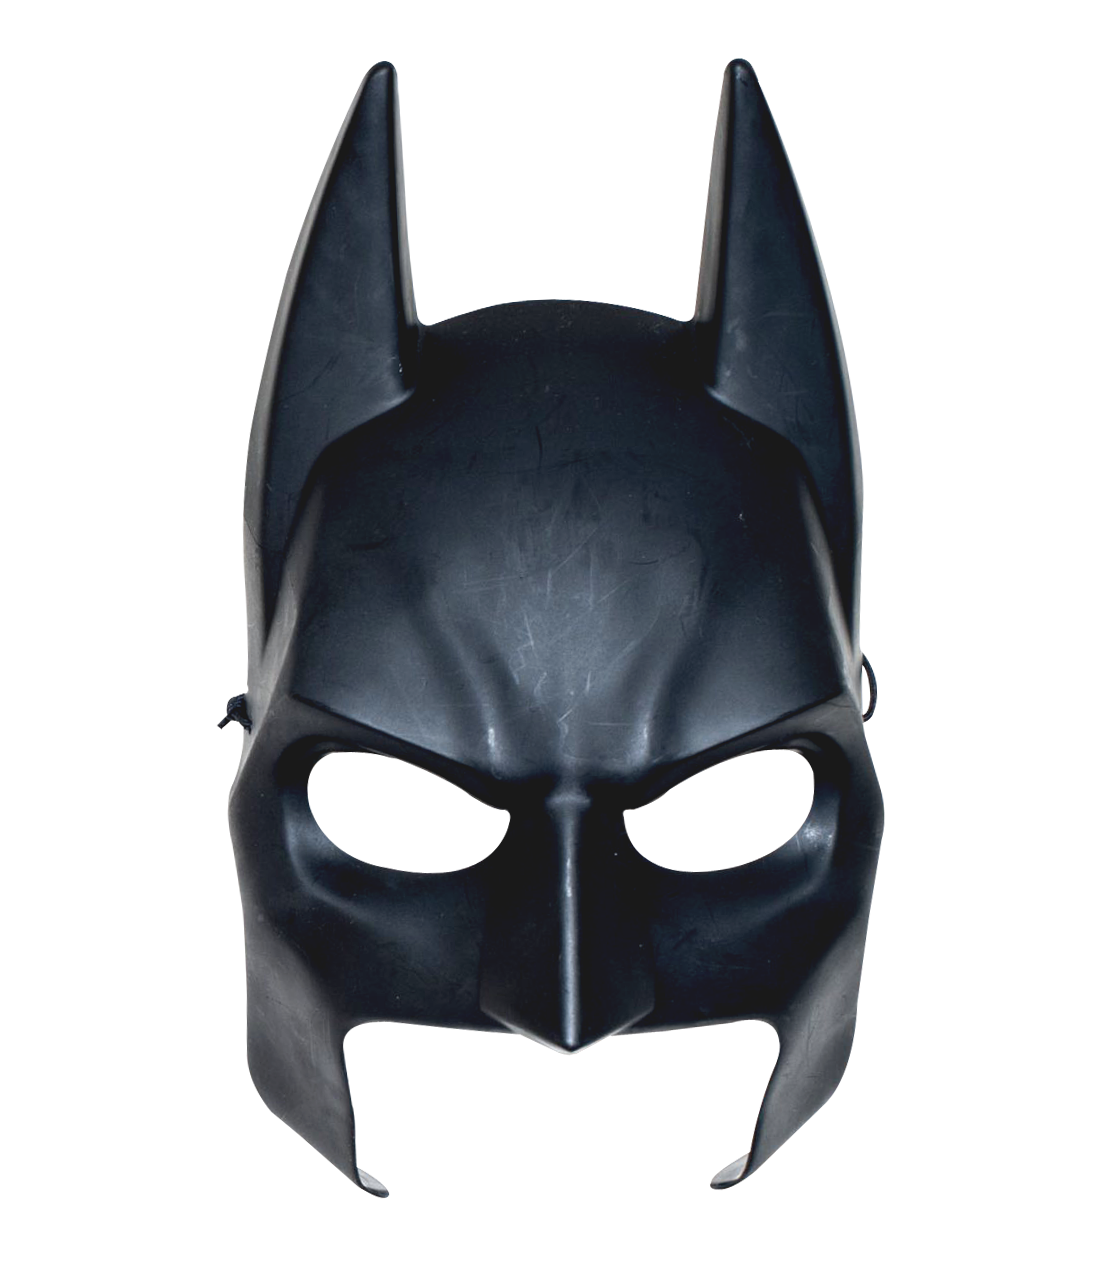 Batman Mask PNG Transparent Image - PNG Mask